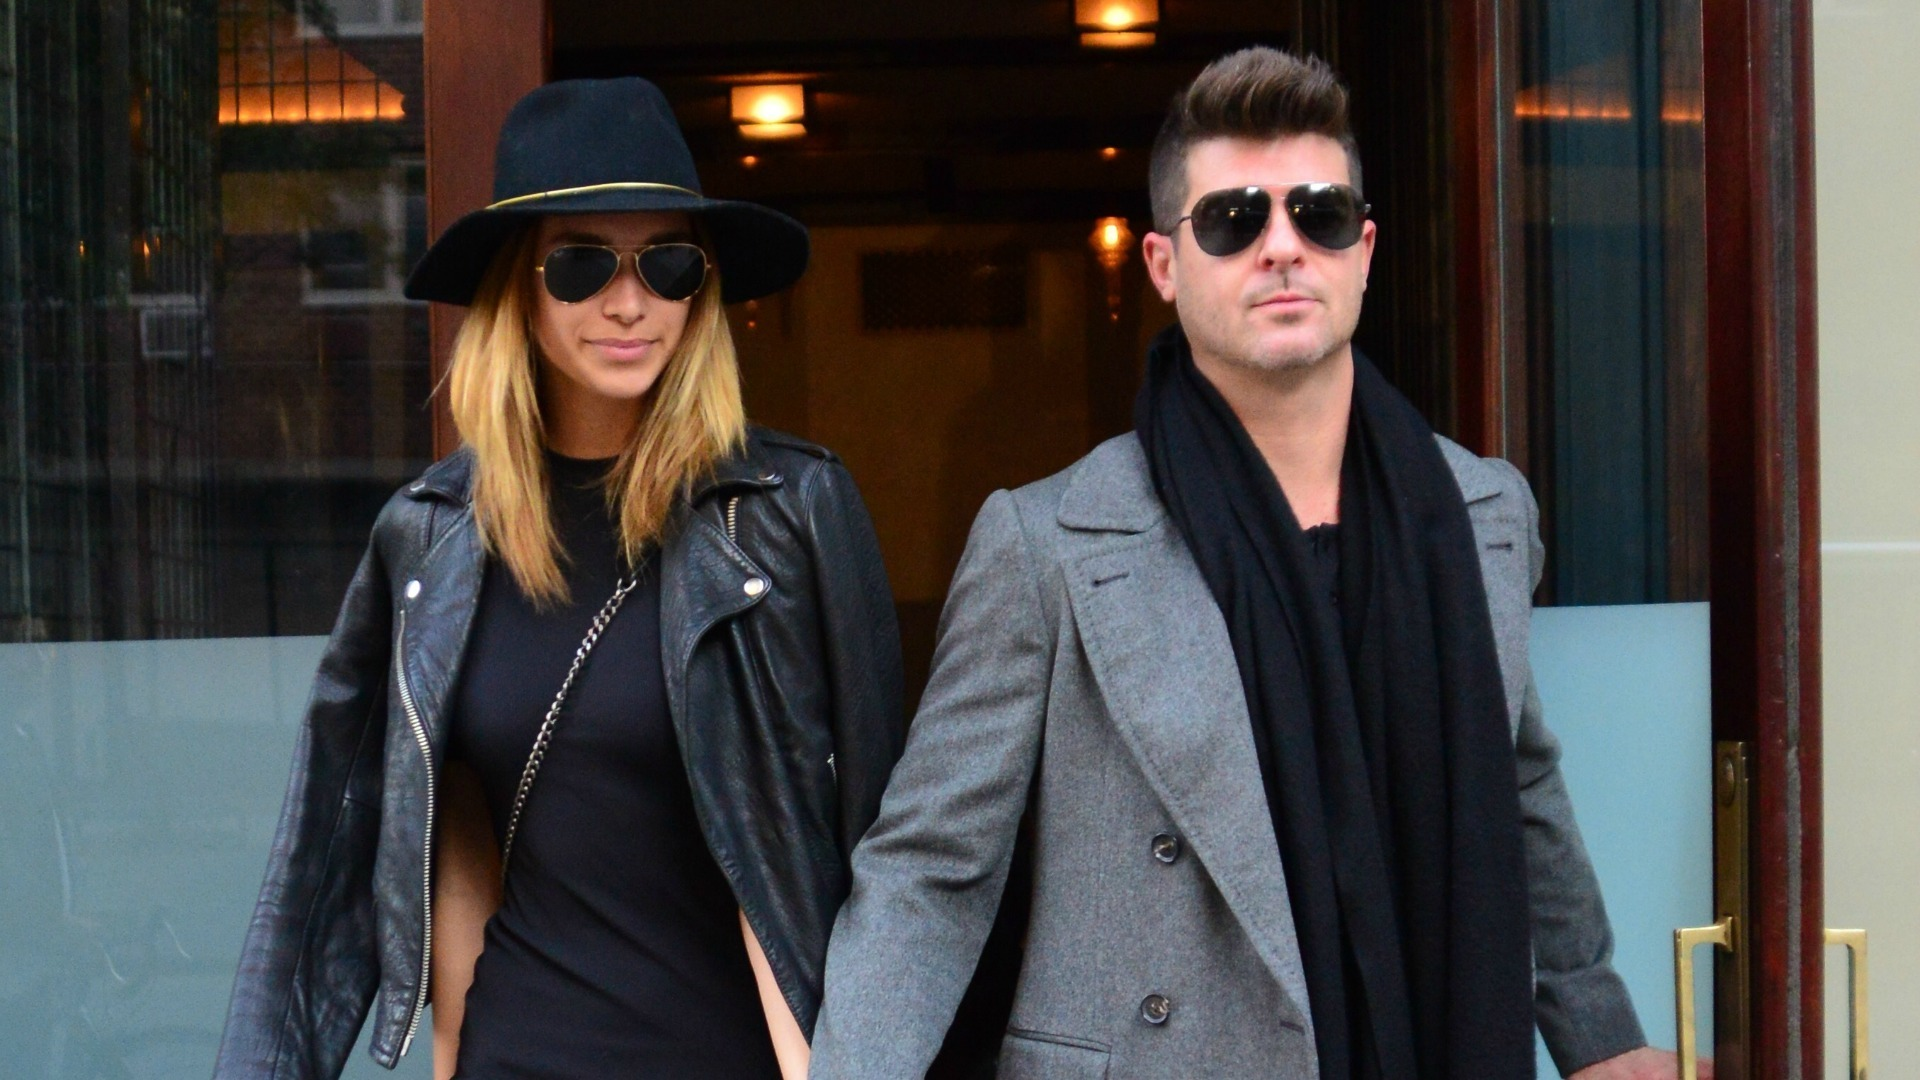 Robin thicke dating model